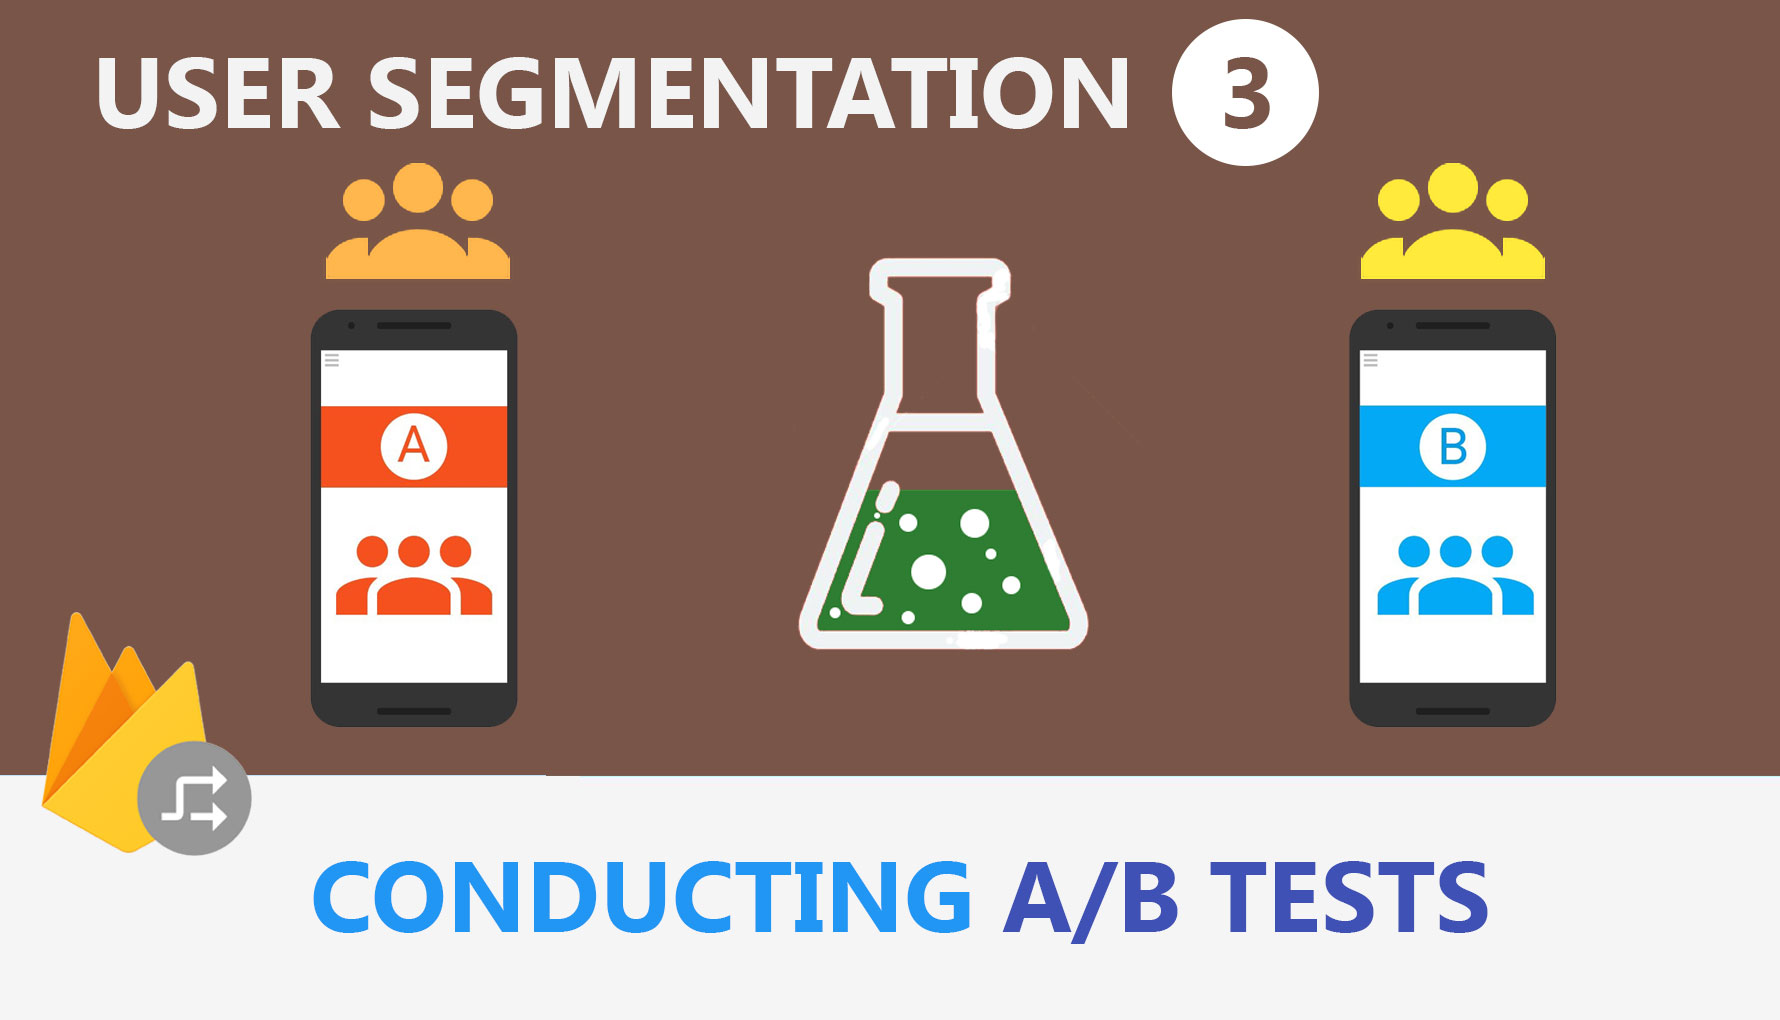 User Segmentation 3: Conducting A/B Tests with Firebase